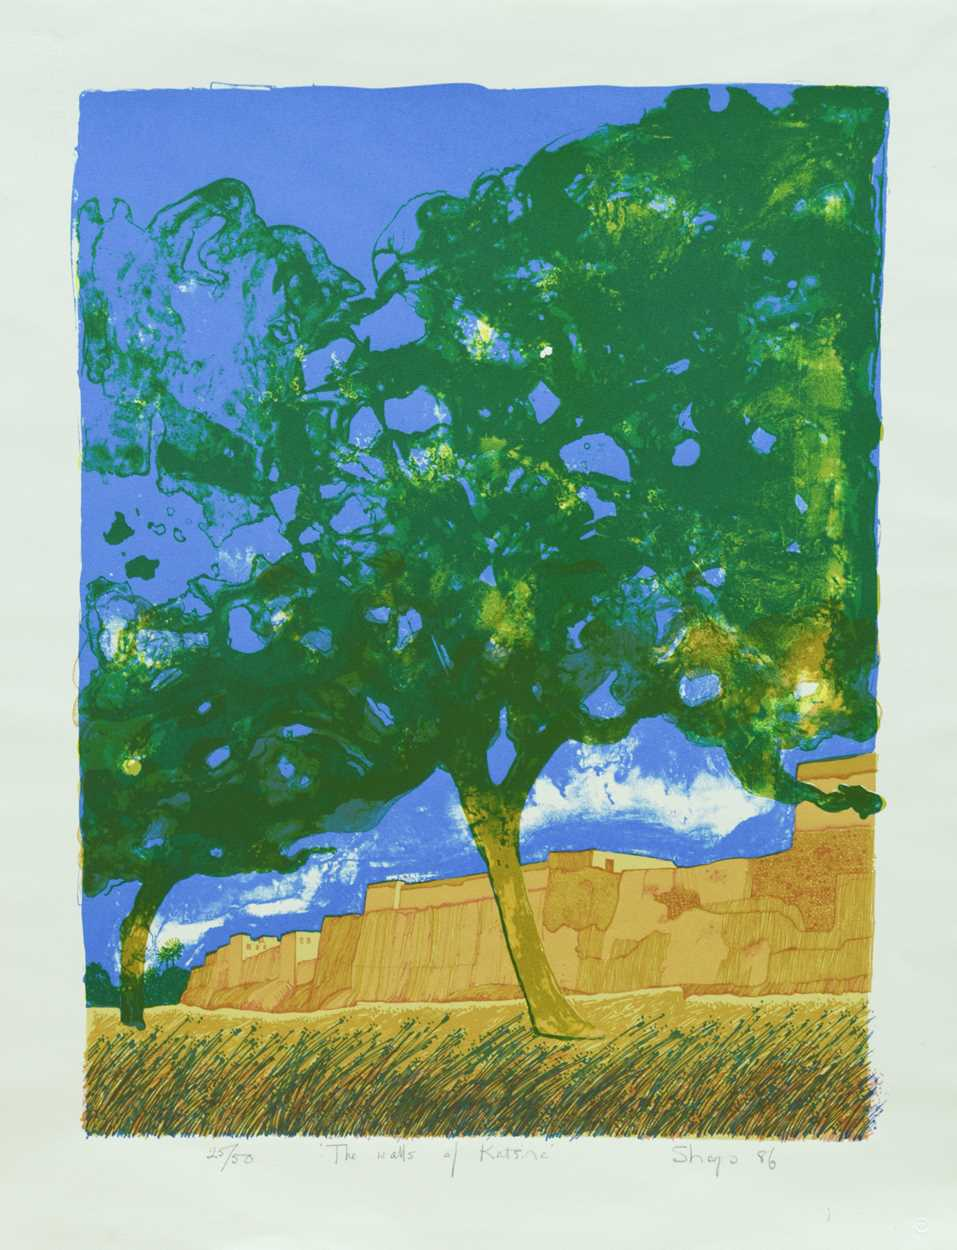 Lot 5 - T Sharpe The Walls of Katsina signed, titled and numbered 25/50; dated 1986 screenprint 64.5 x 50cm,